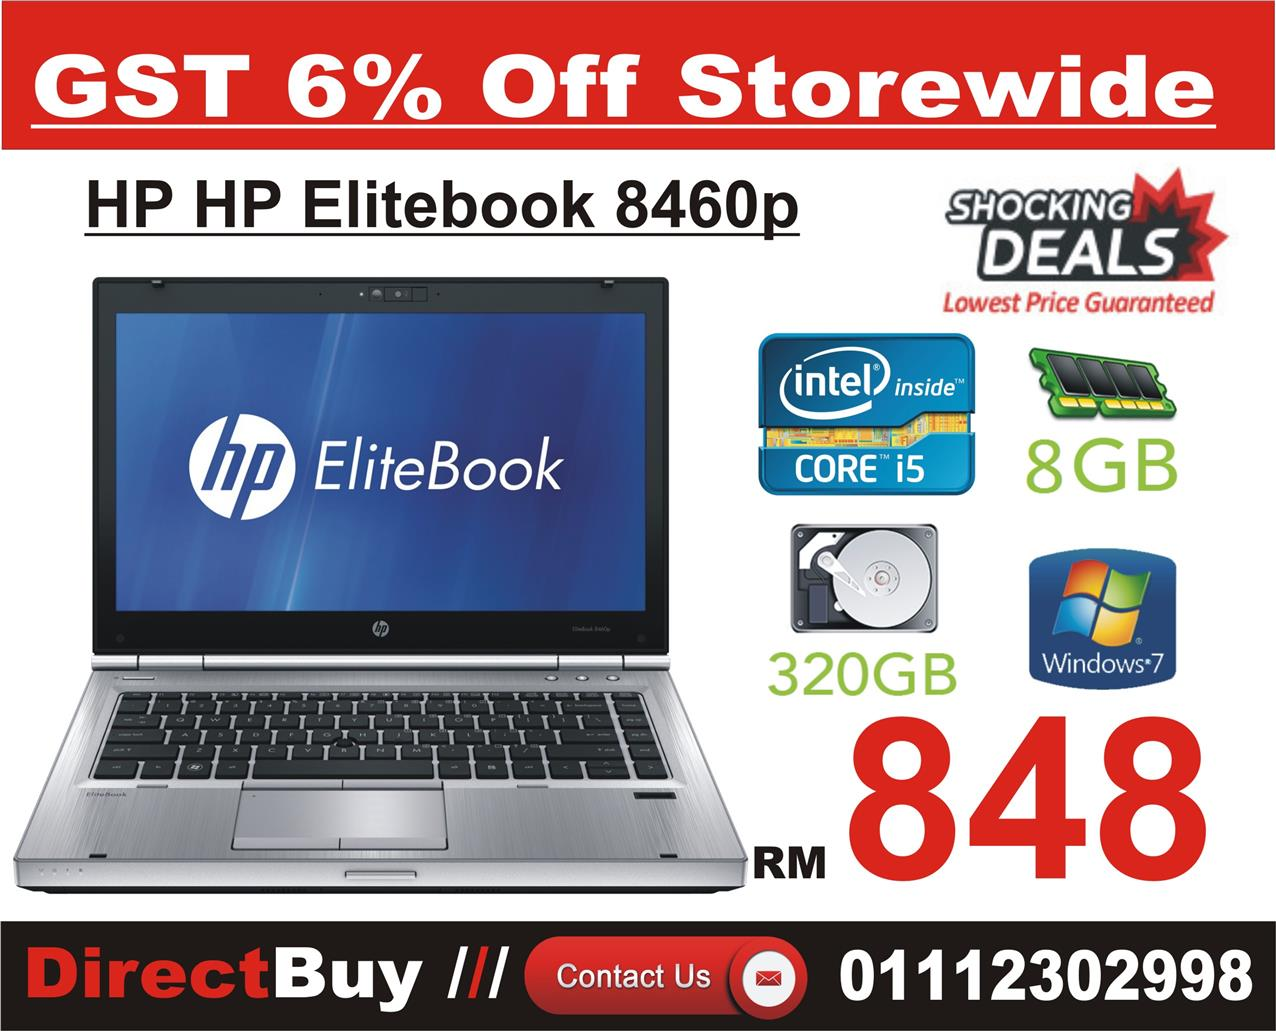 HP HP EliteBook 8460p i5 / 8GB RAM / HDD 320GB Original (win7)